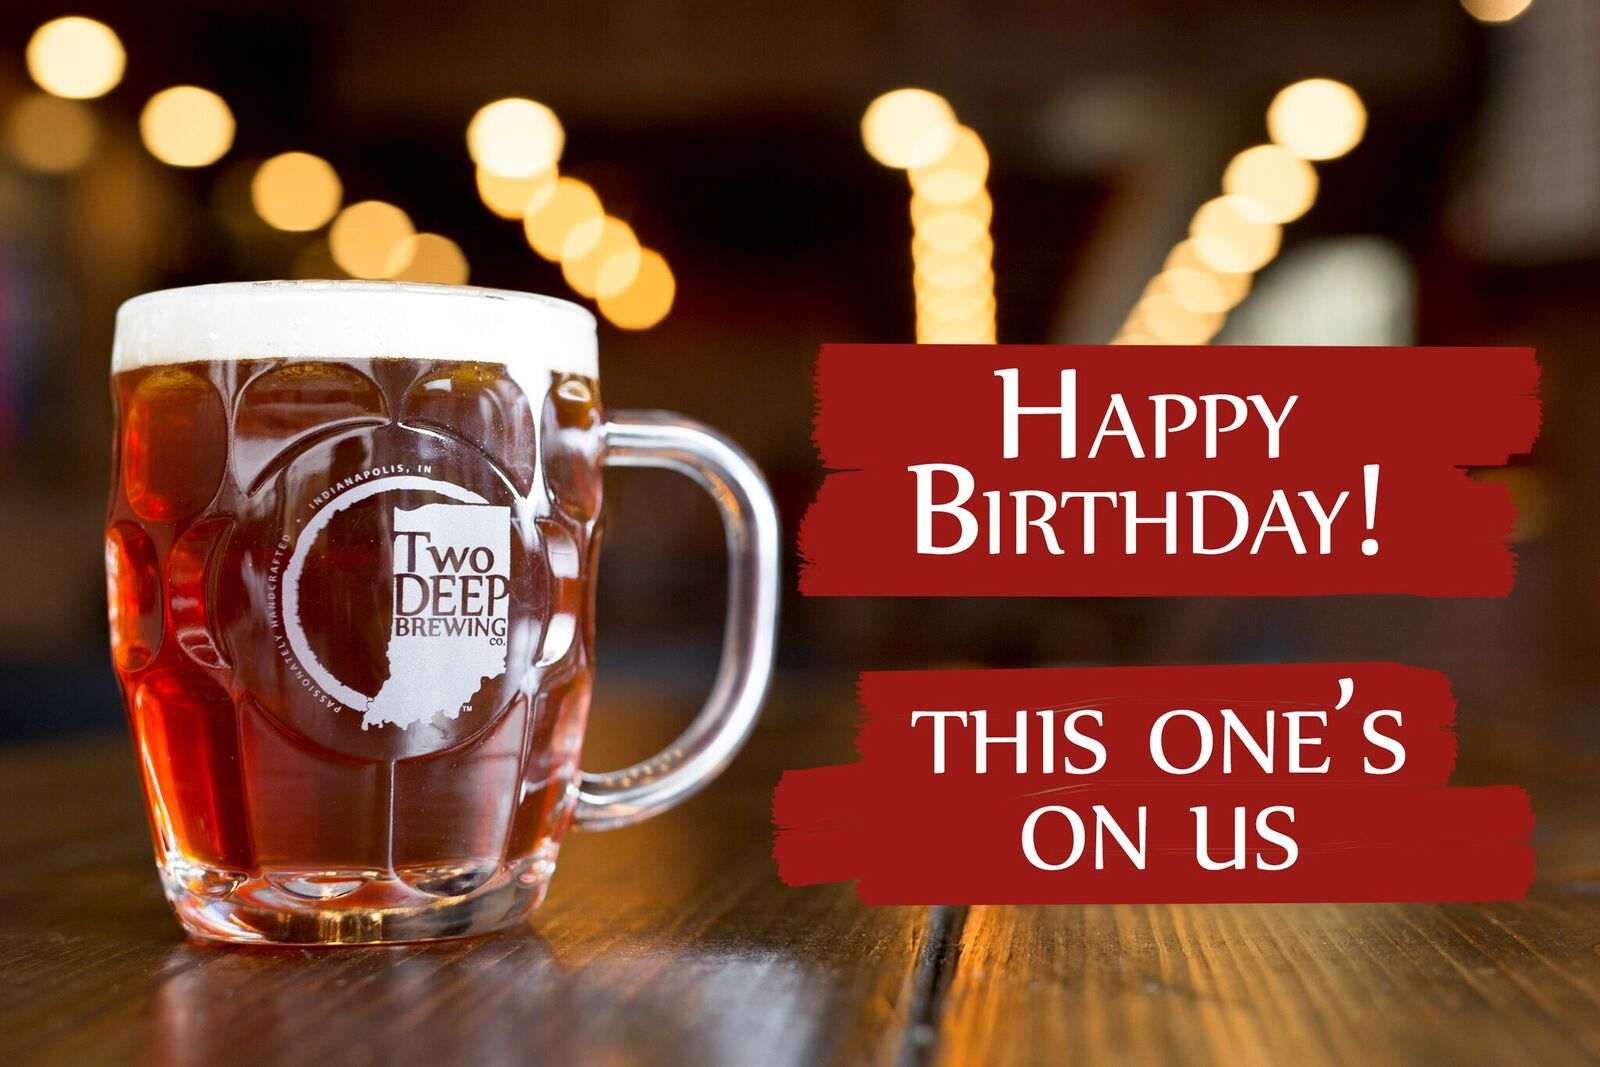 BIRTHDAY BEERS  Toast to your birth with a celebratory beer on your birthday!